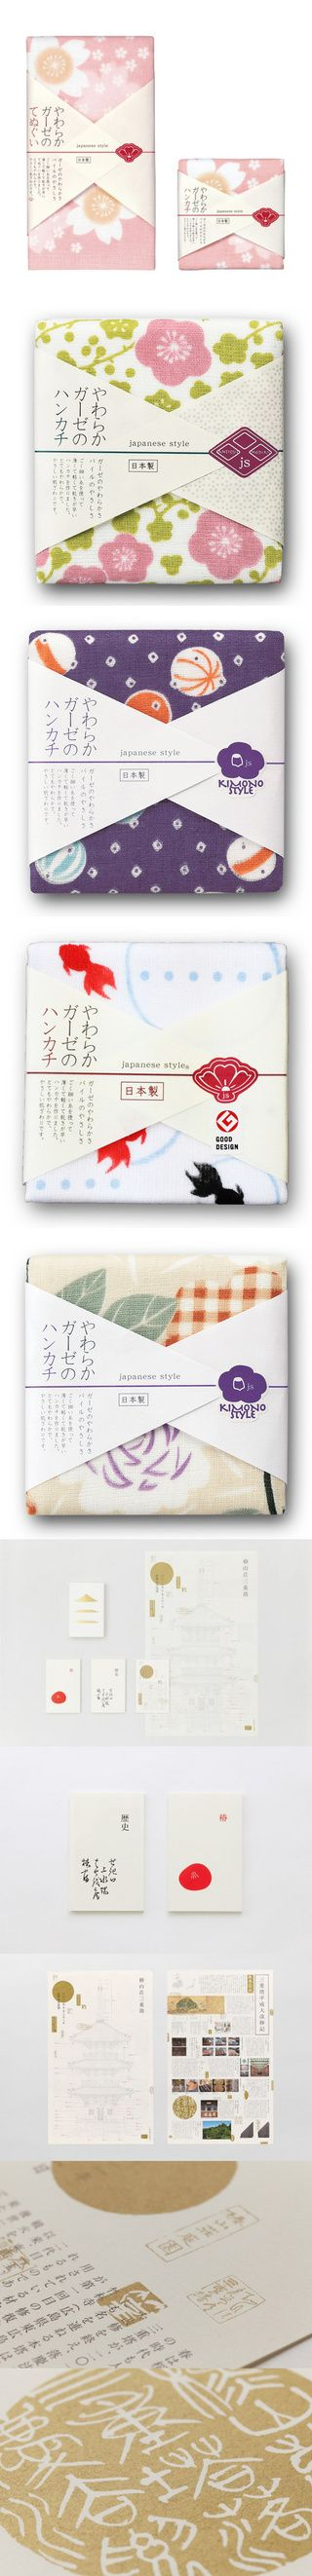 Diseño Editorial japones. #diseño #editorial 包装(581图)_@kohnny收集_花瓣潮品/单品 These are so pretty. It looks like linens. PD